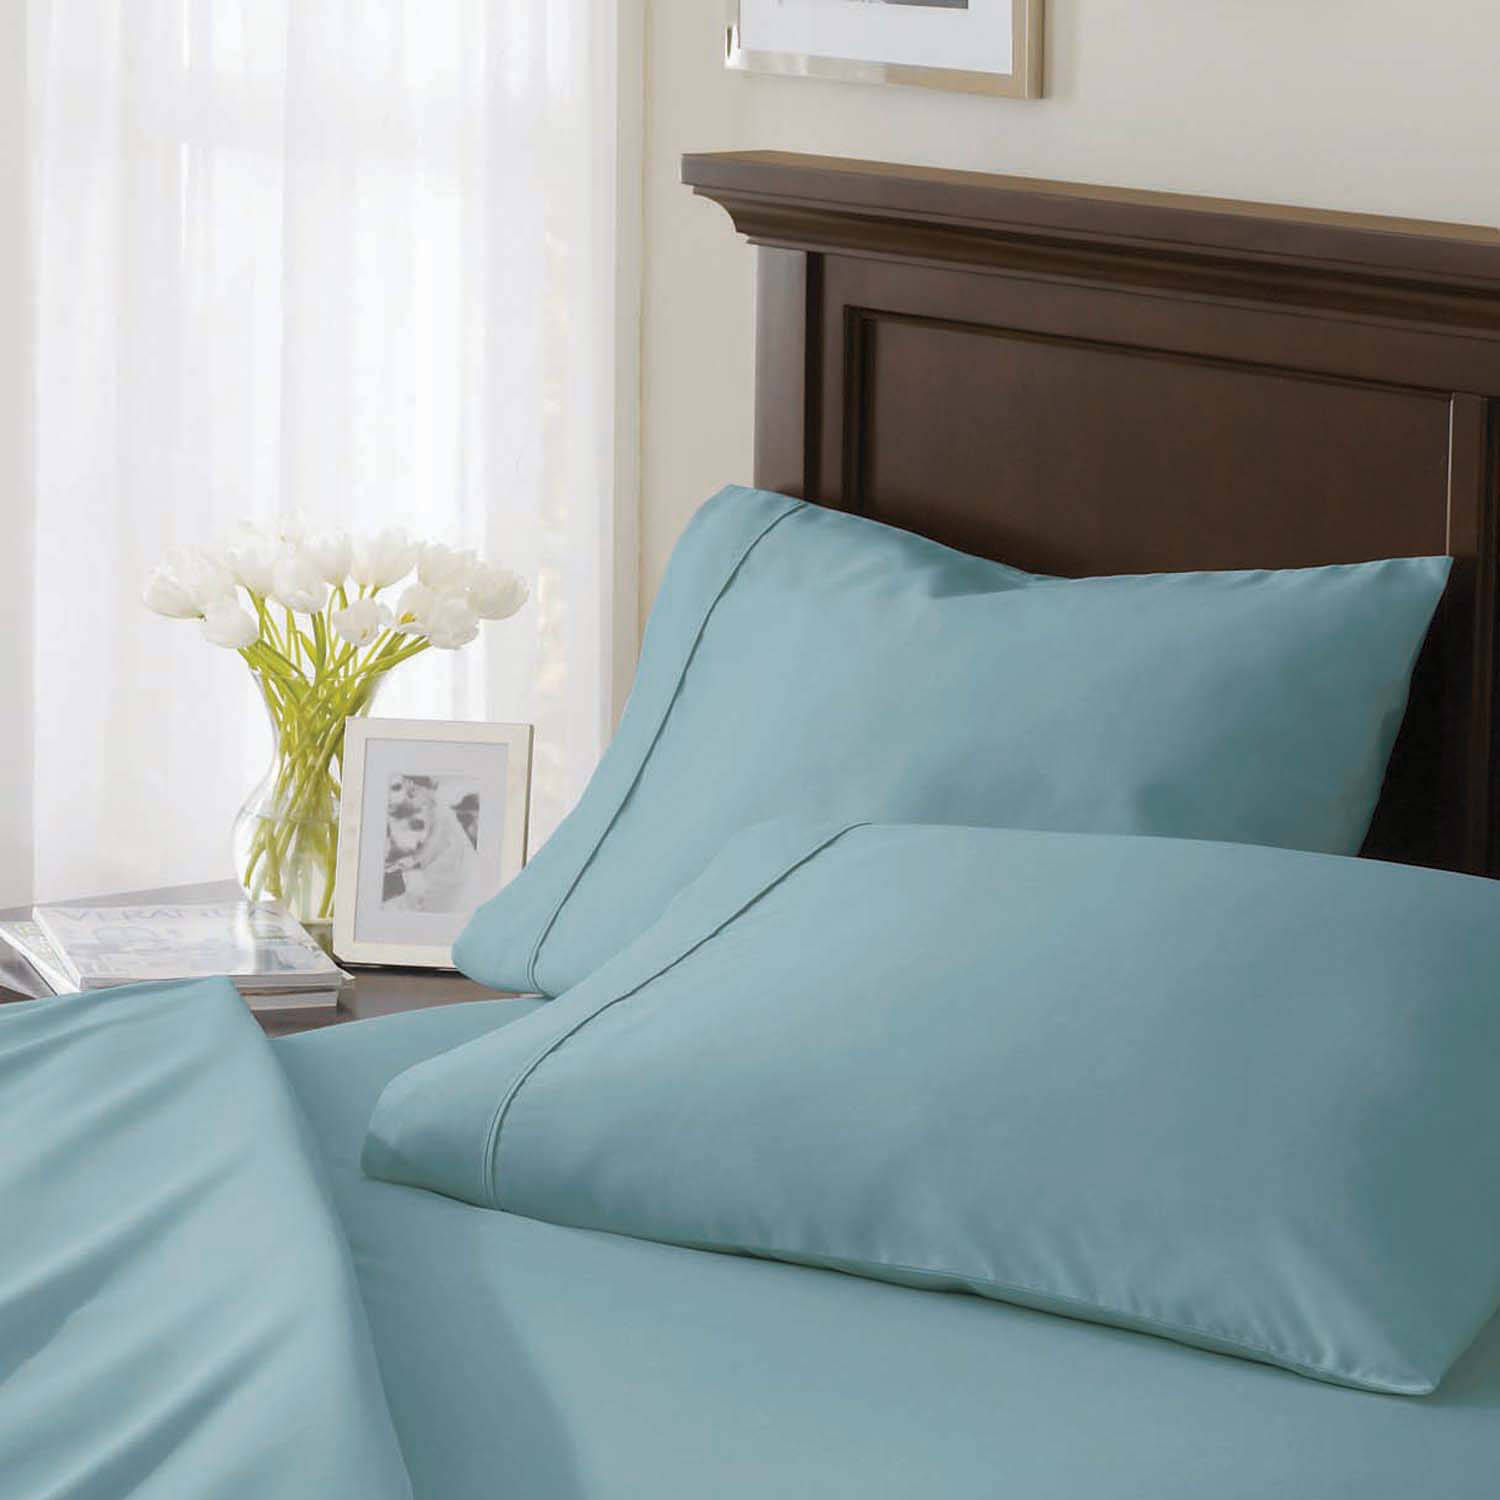 Better Homes and Gardens 400-Thread-Count Solid Pillowcase, Sheer Romance